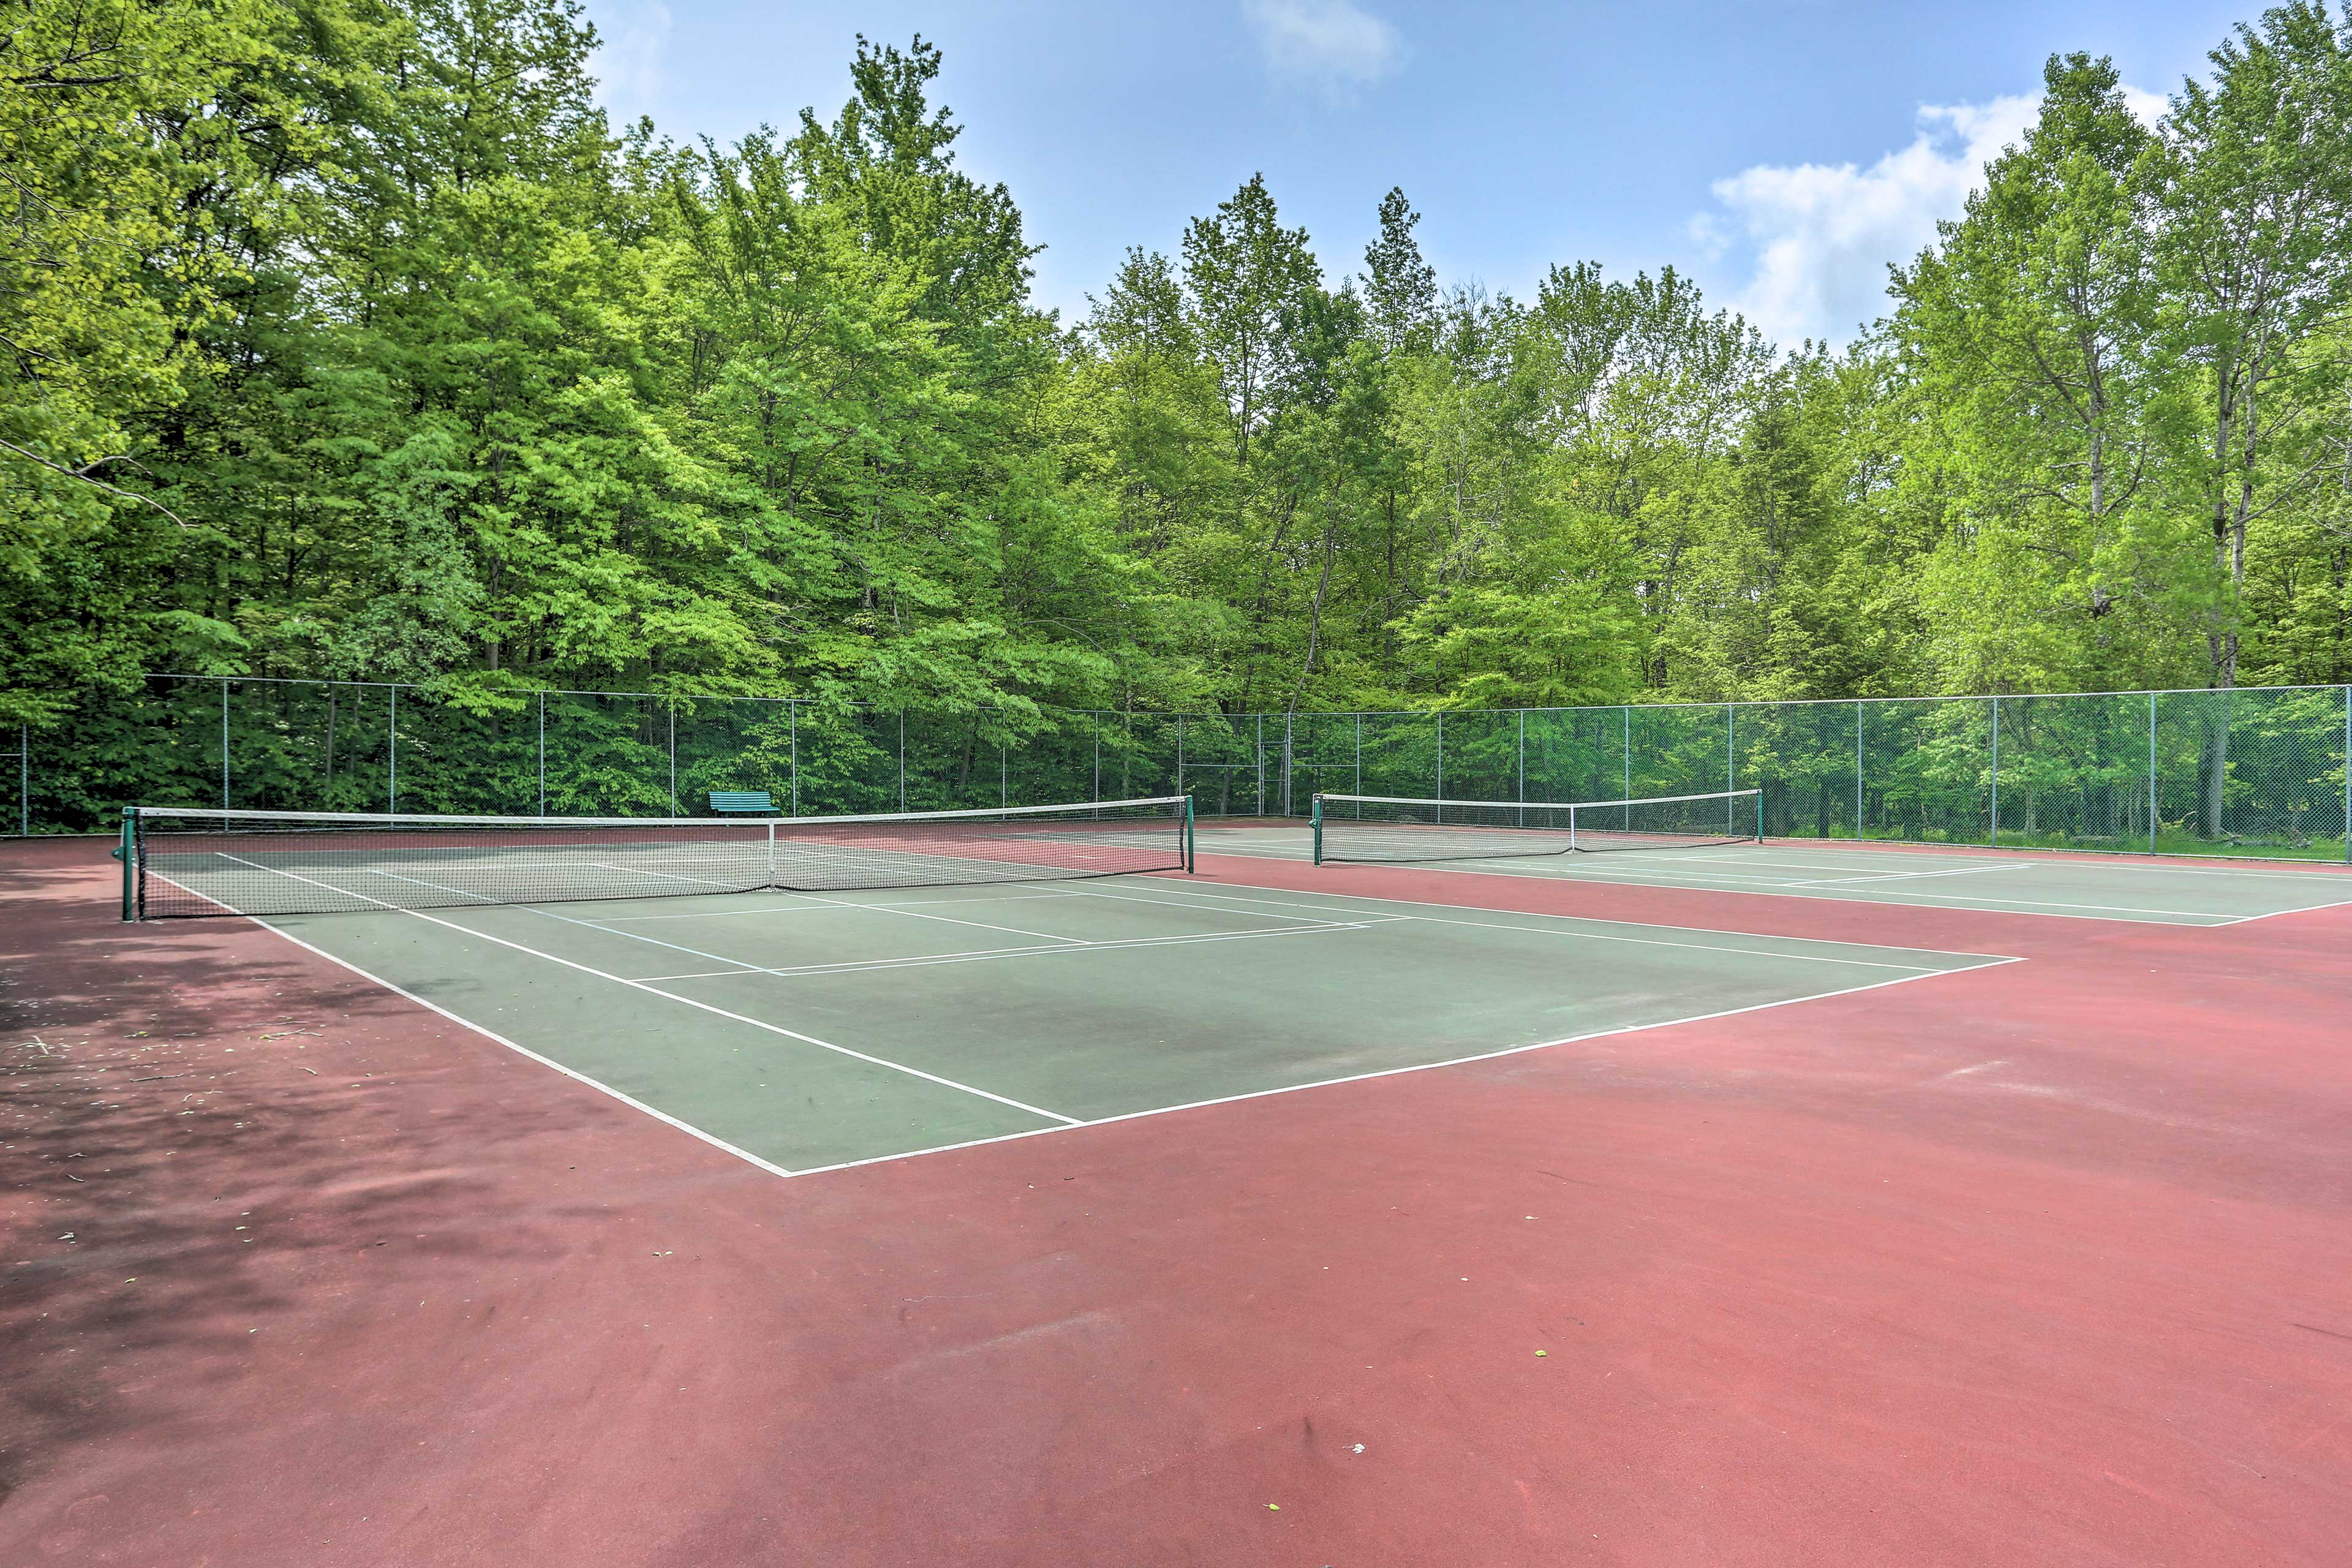 Bring your tennis rackets for a game on the courts.